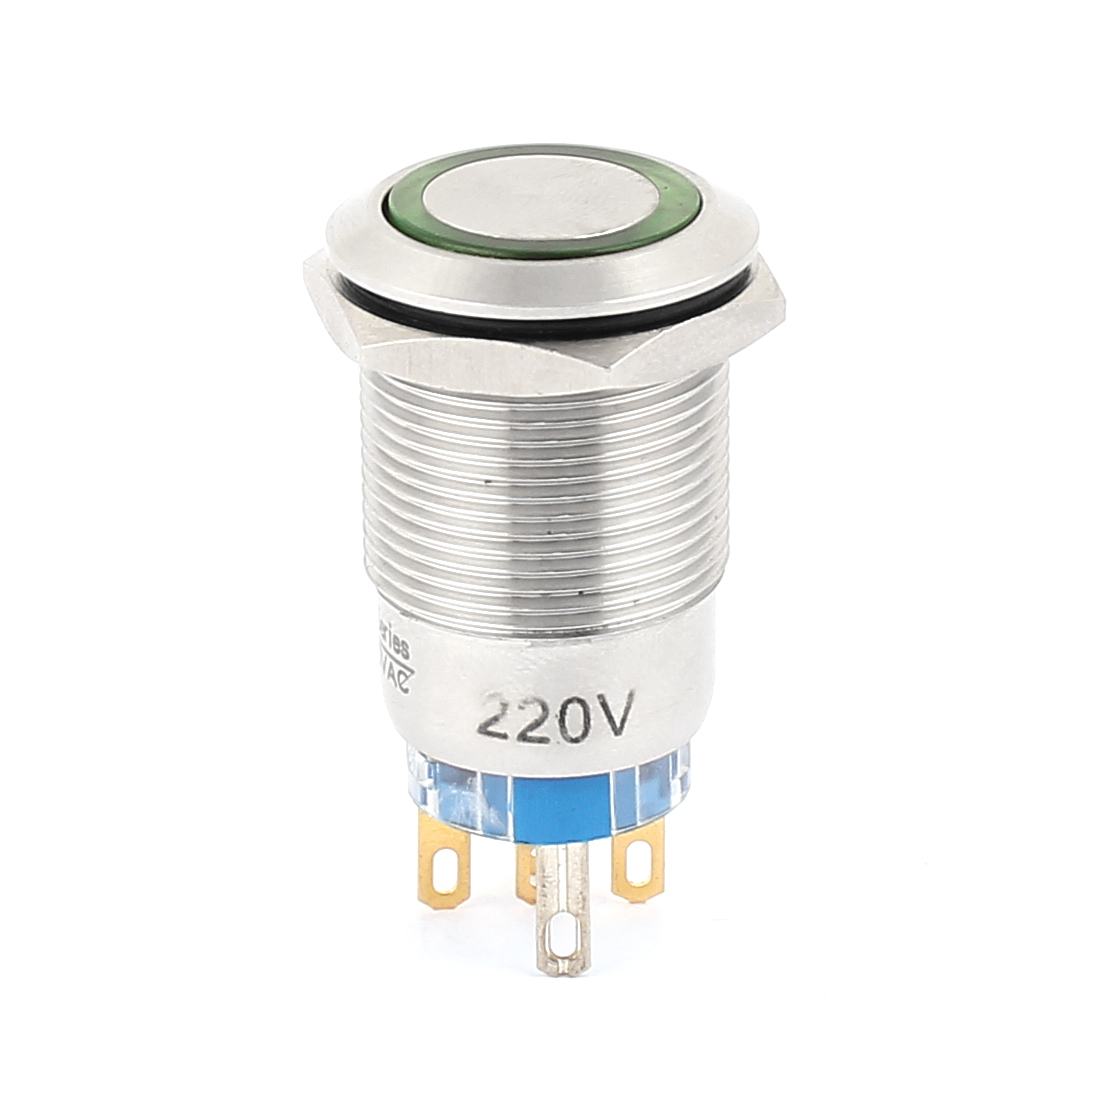 AC 220V 16mm Green LED Light 19mm Mounted Thread 5Pins SPDT NO/NC Flat Head Momentary Push Button Switch